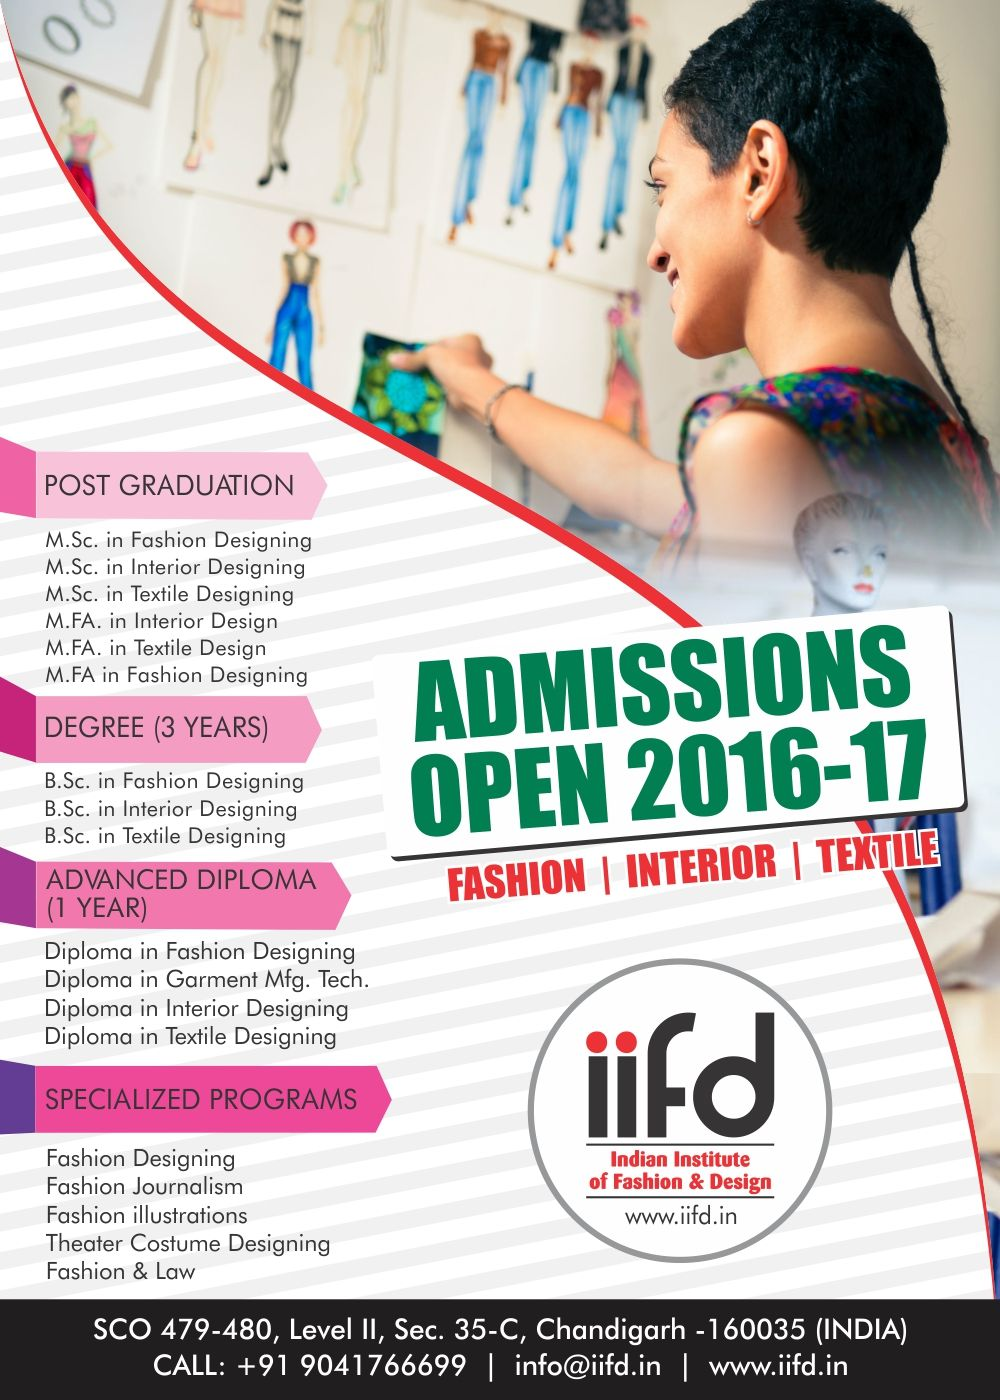 Admission Open In Fashion Designing Institute Indian Of Design Fill Online